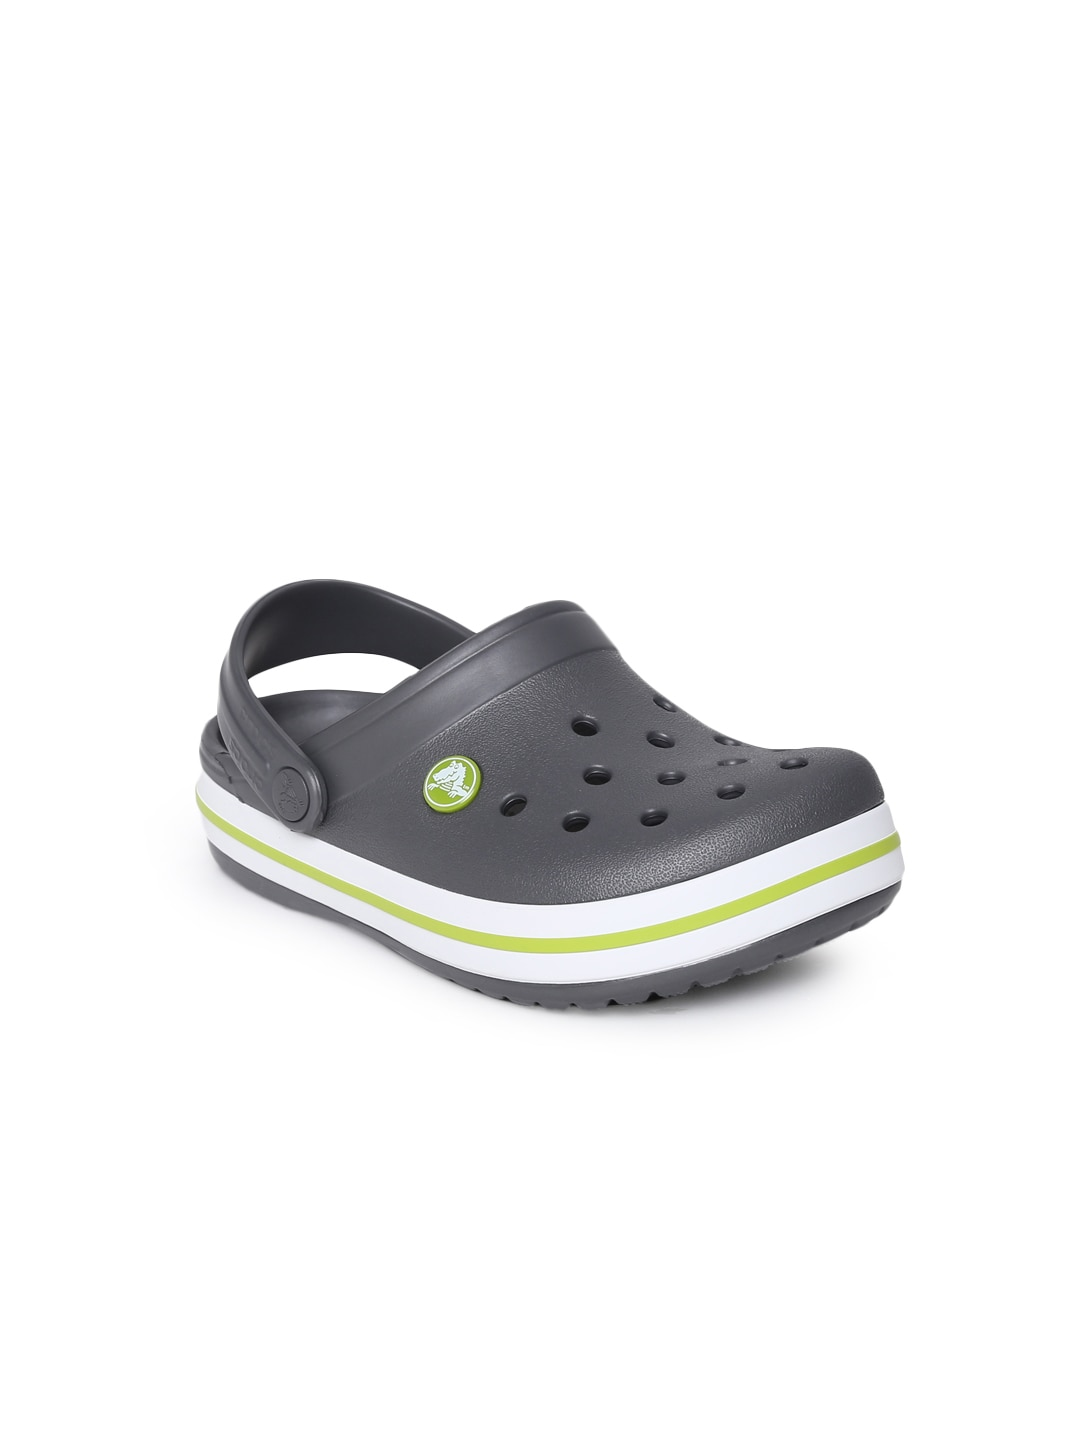 Crocs Unisex Charcoal Grey Solid Crocband  Clogs image